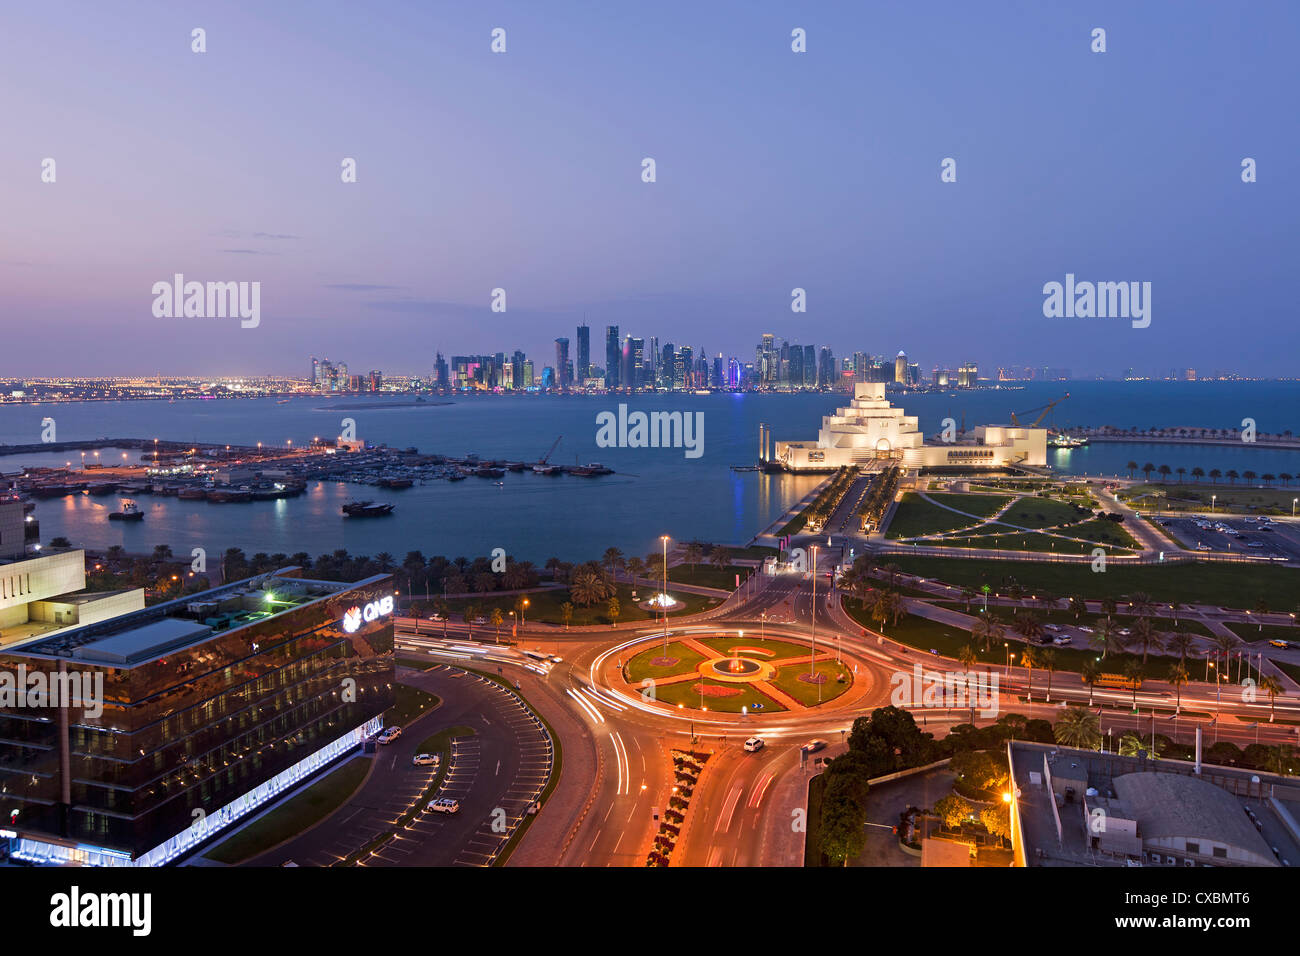 Elevated view over the Museum of Islamic Art and the Dhow harbour to the modern skyscraper skyline, Doha, Qatar, Stock Photo